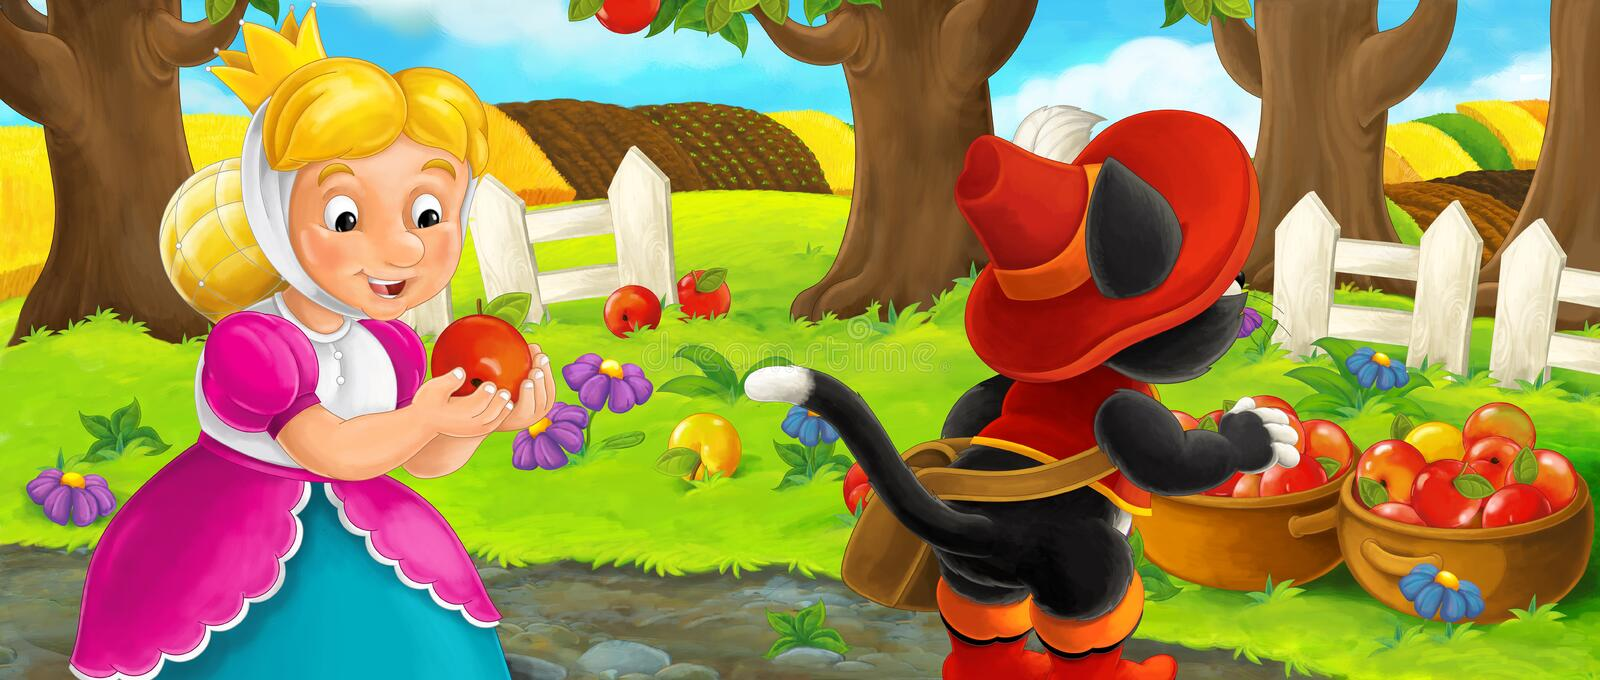 Cartoon scene with queen and cat traveler visiting apple garden during beautiful day stock illustration